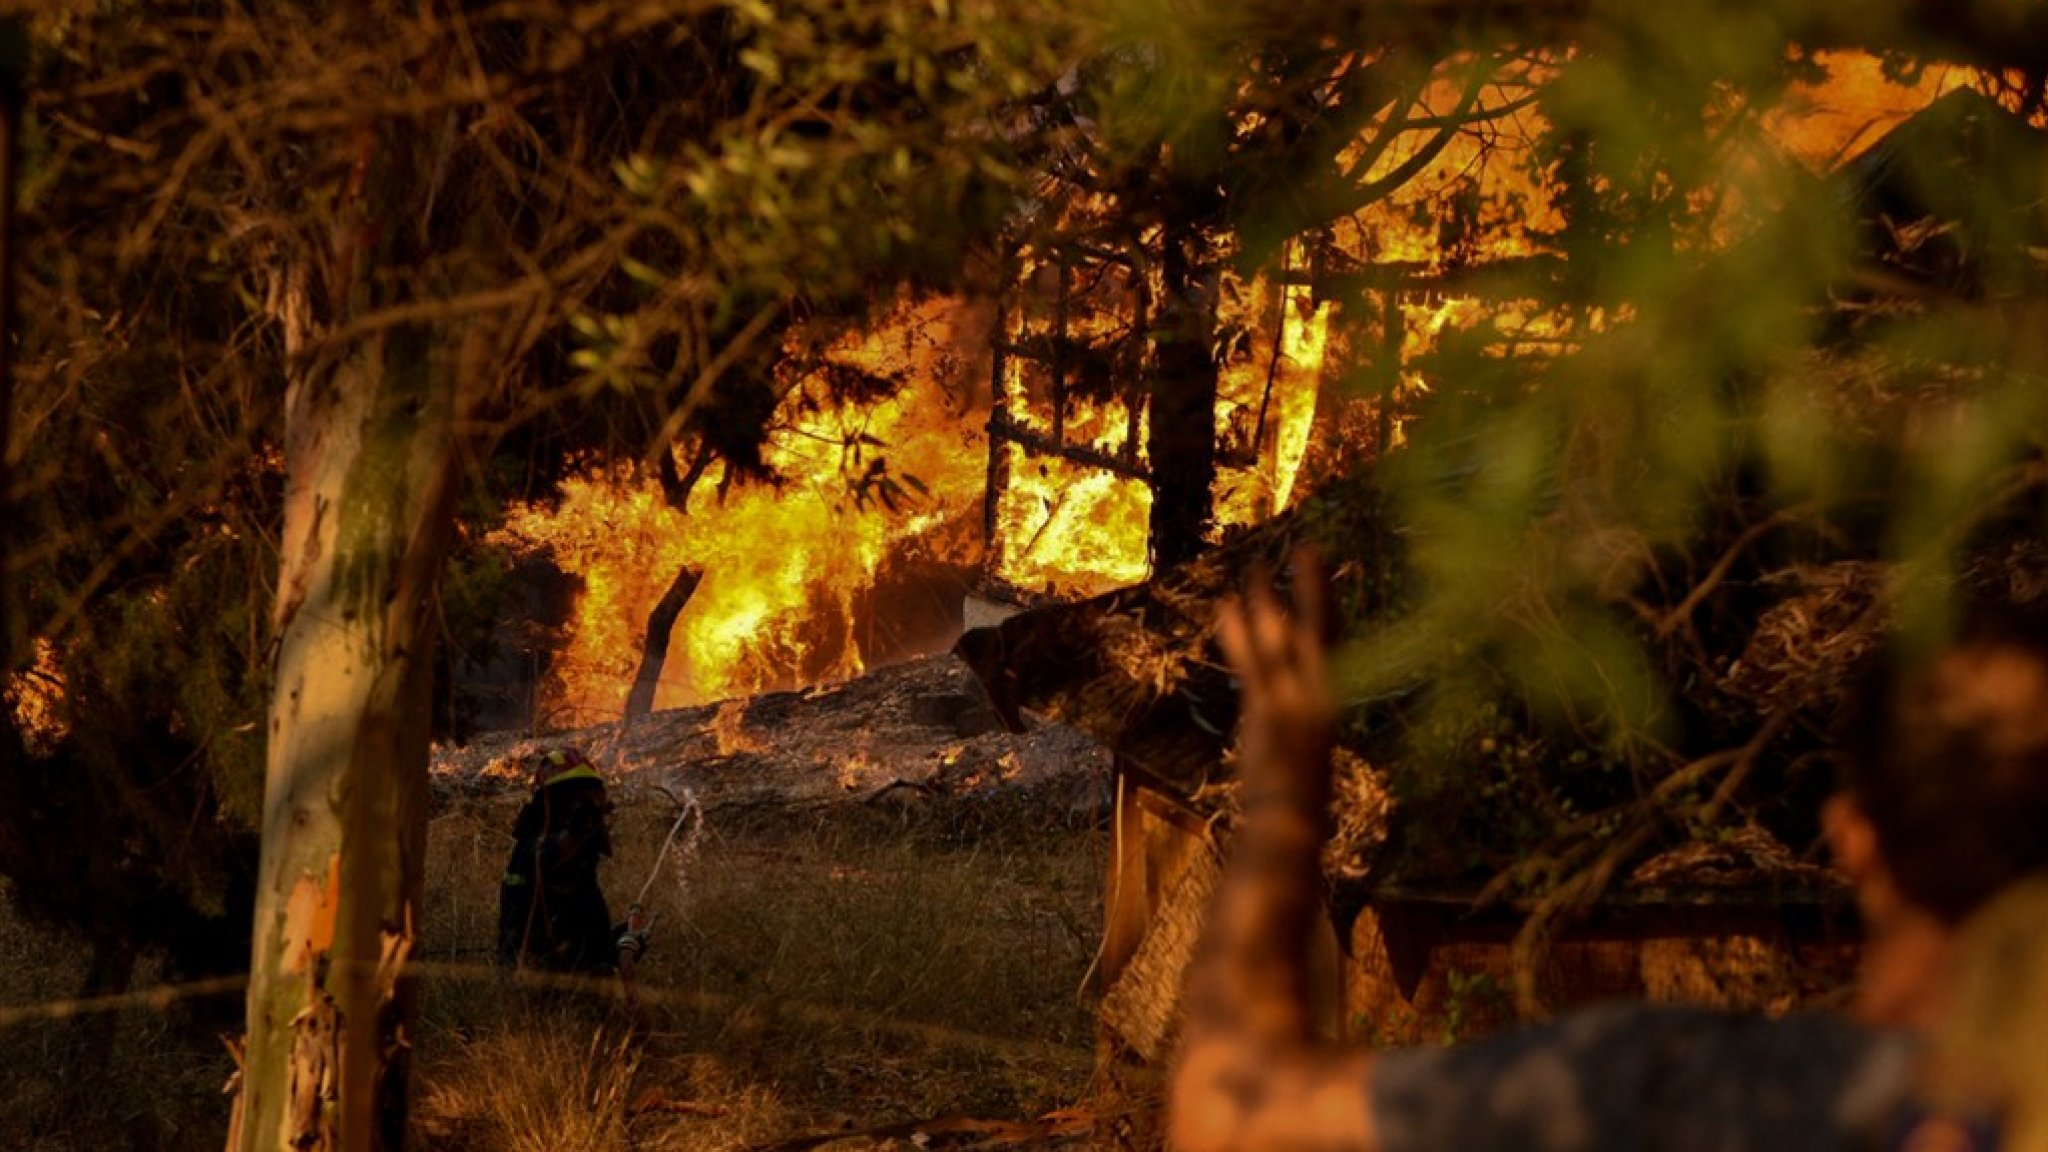 Villages evacuated in Greece due to wildfires